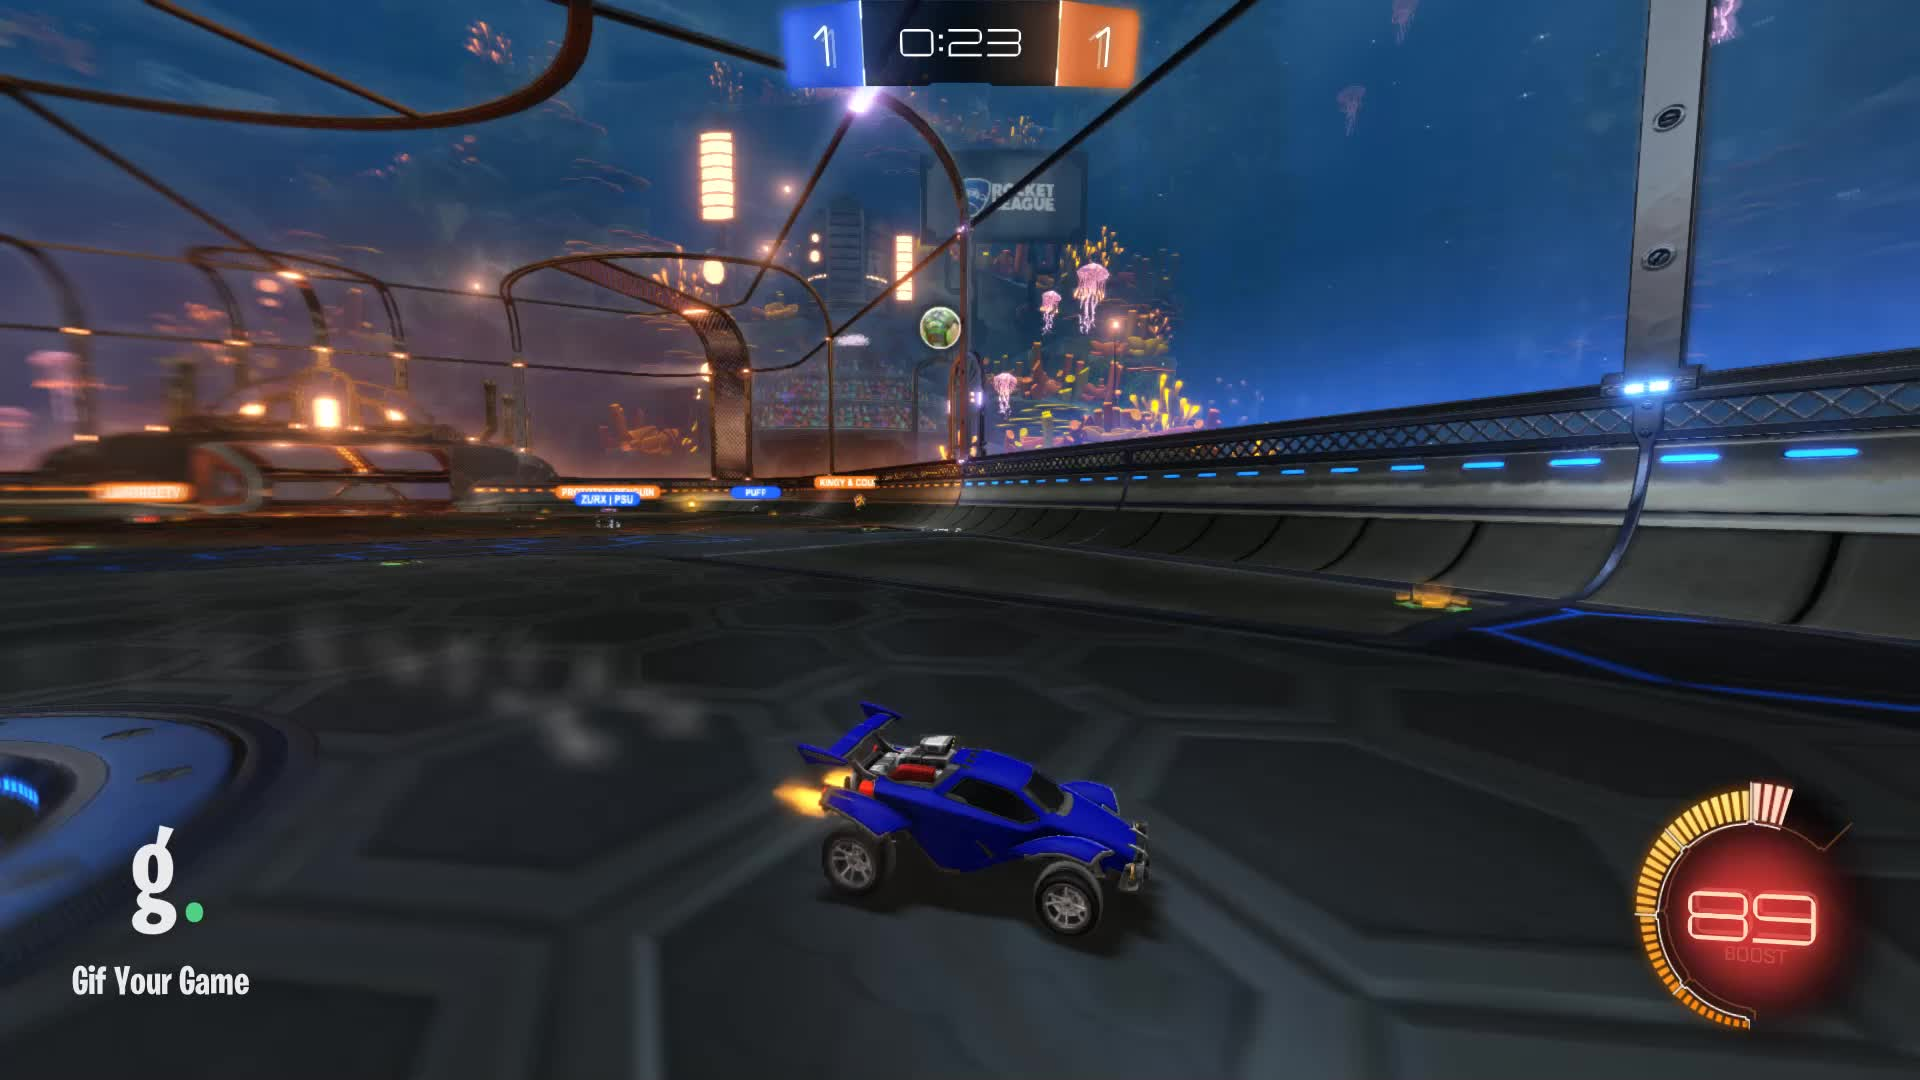 Assist, Gif Your Game, GifYourGame, Rocket League, RocketLeague, Smite, Assist 1: Smite GIFs